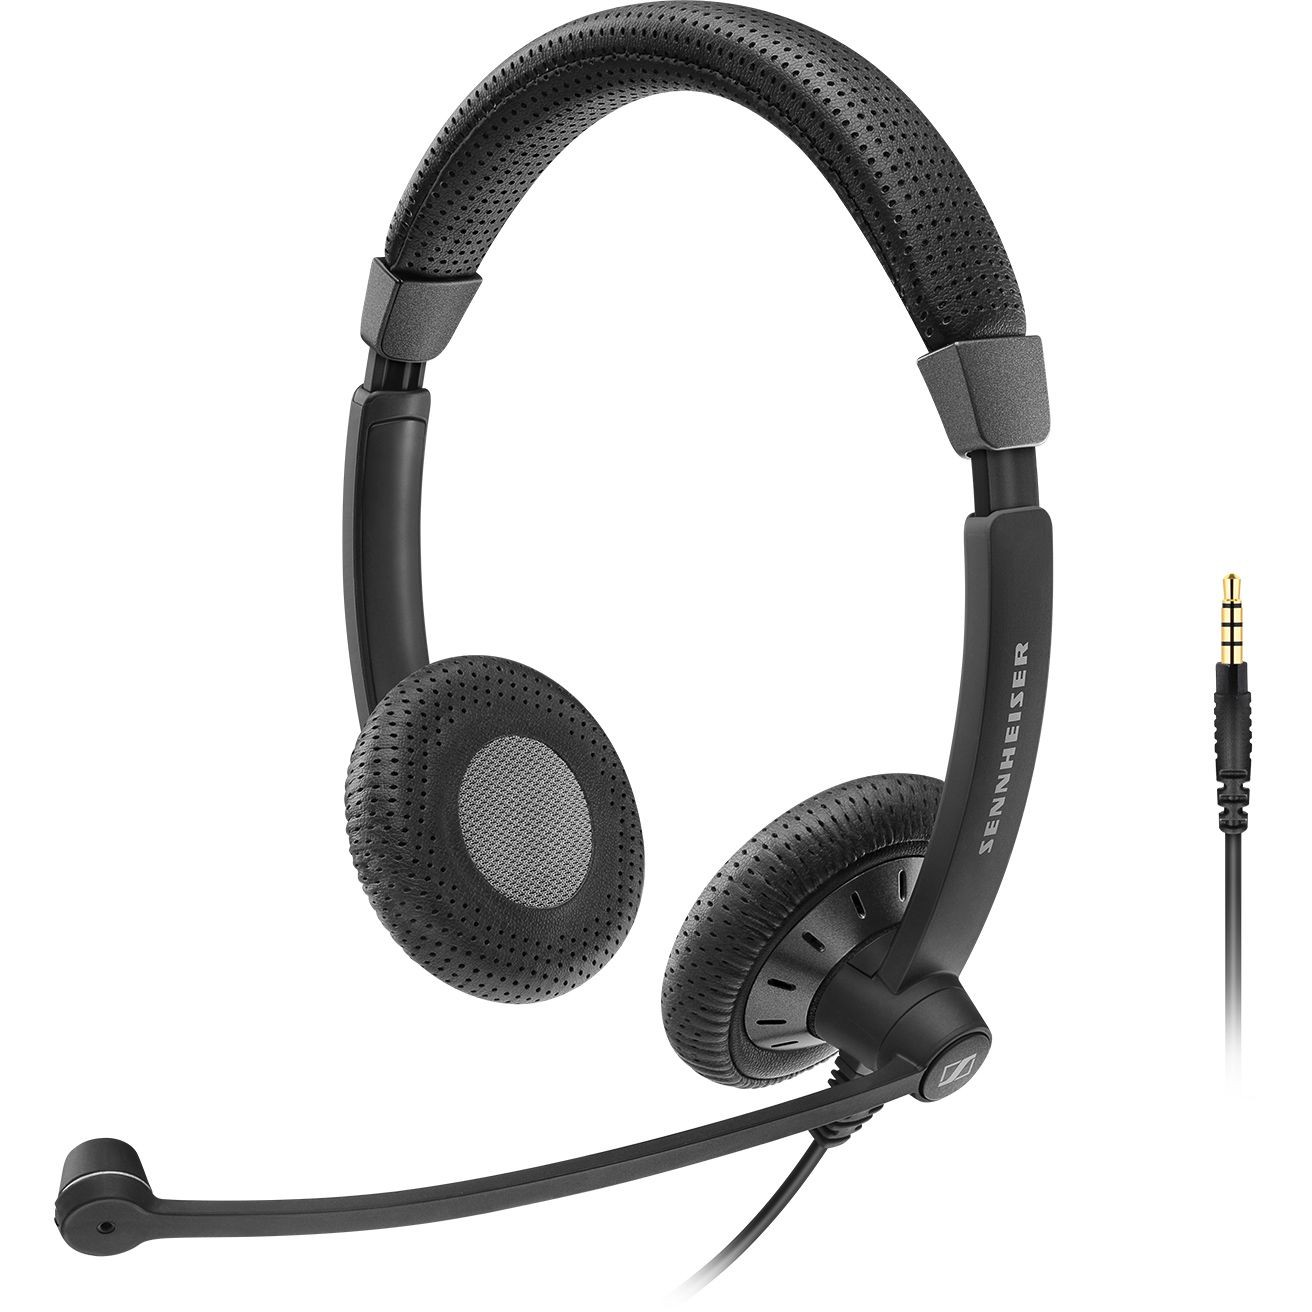 Sennheiser SC75 Duo Headset with 3.5mm Jack